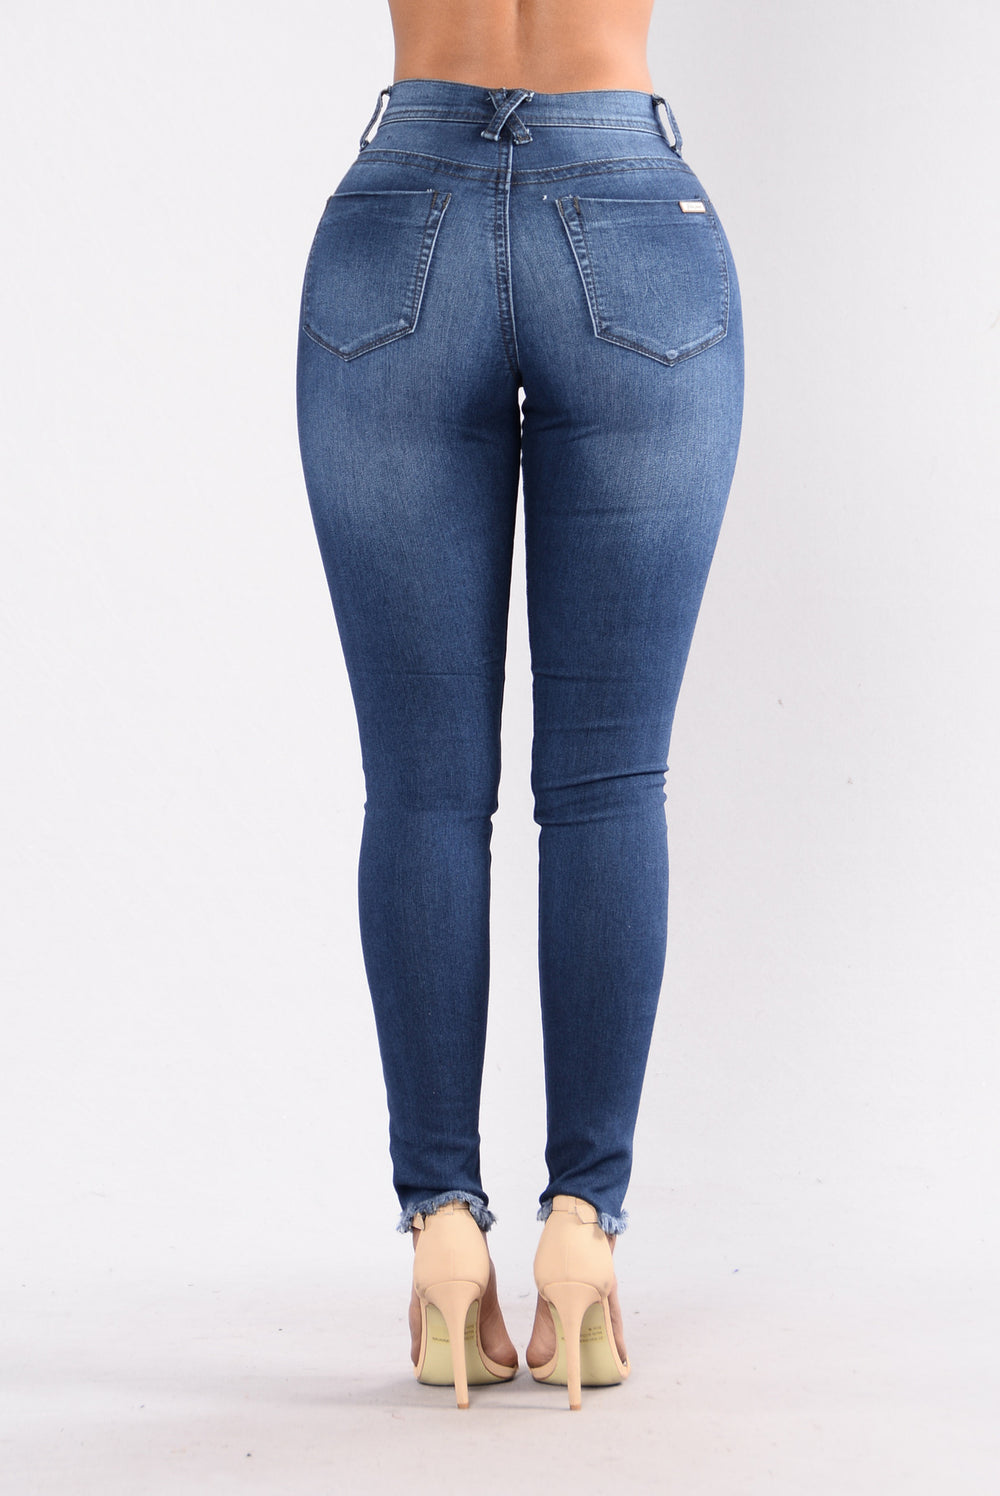 Follow You Down Jeans - Medium Blue